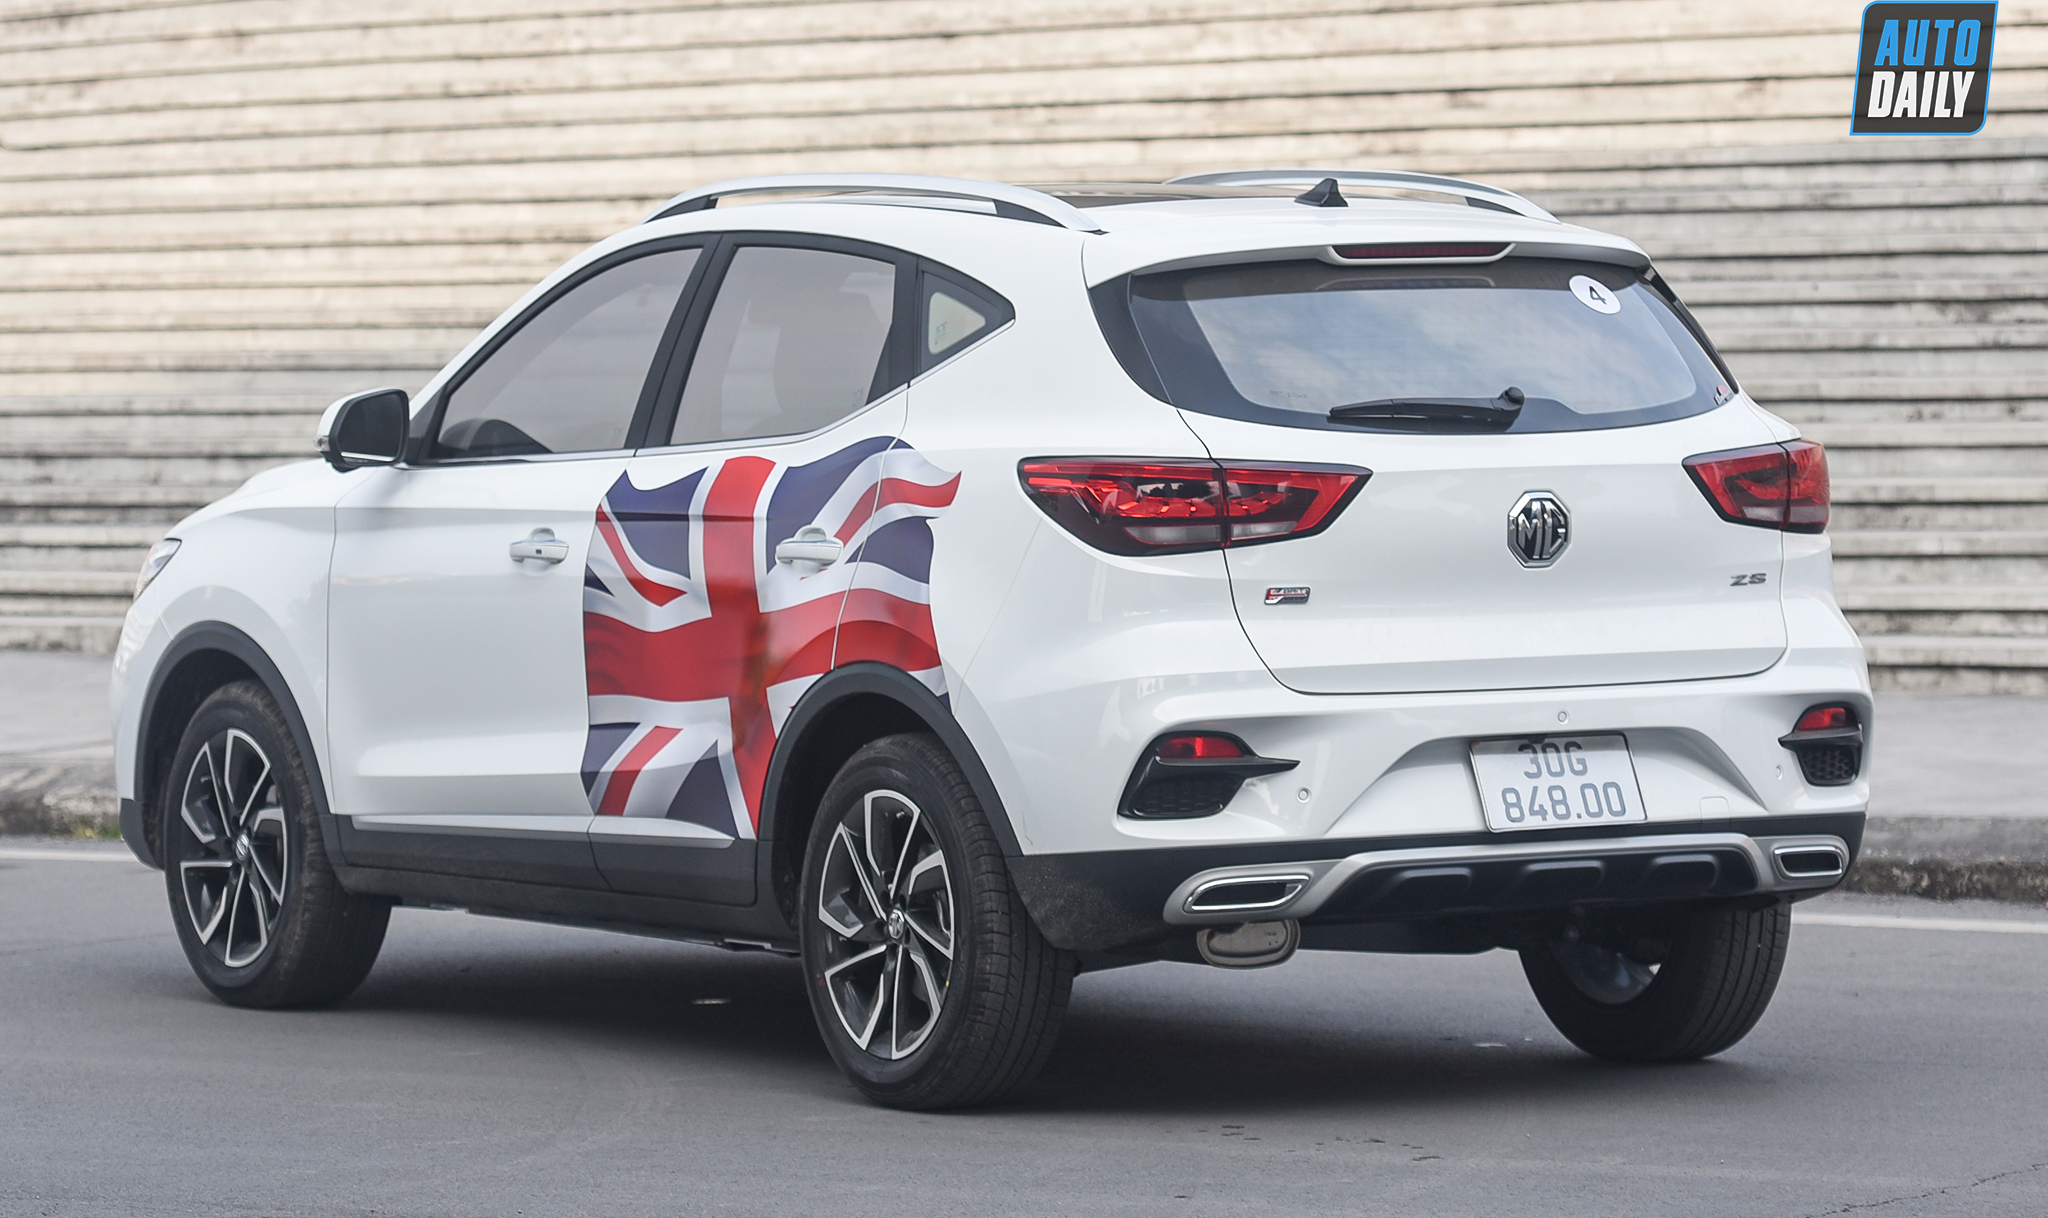 MG ZS 2021 evaluation: A reasonable choice of VND 600 million 4.jpg price range